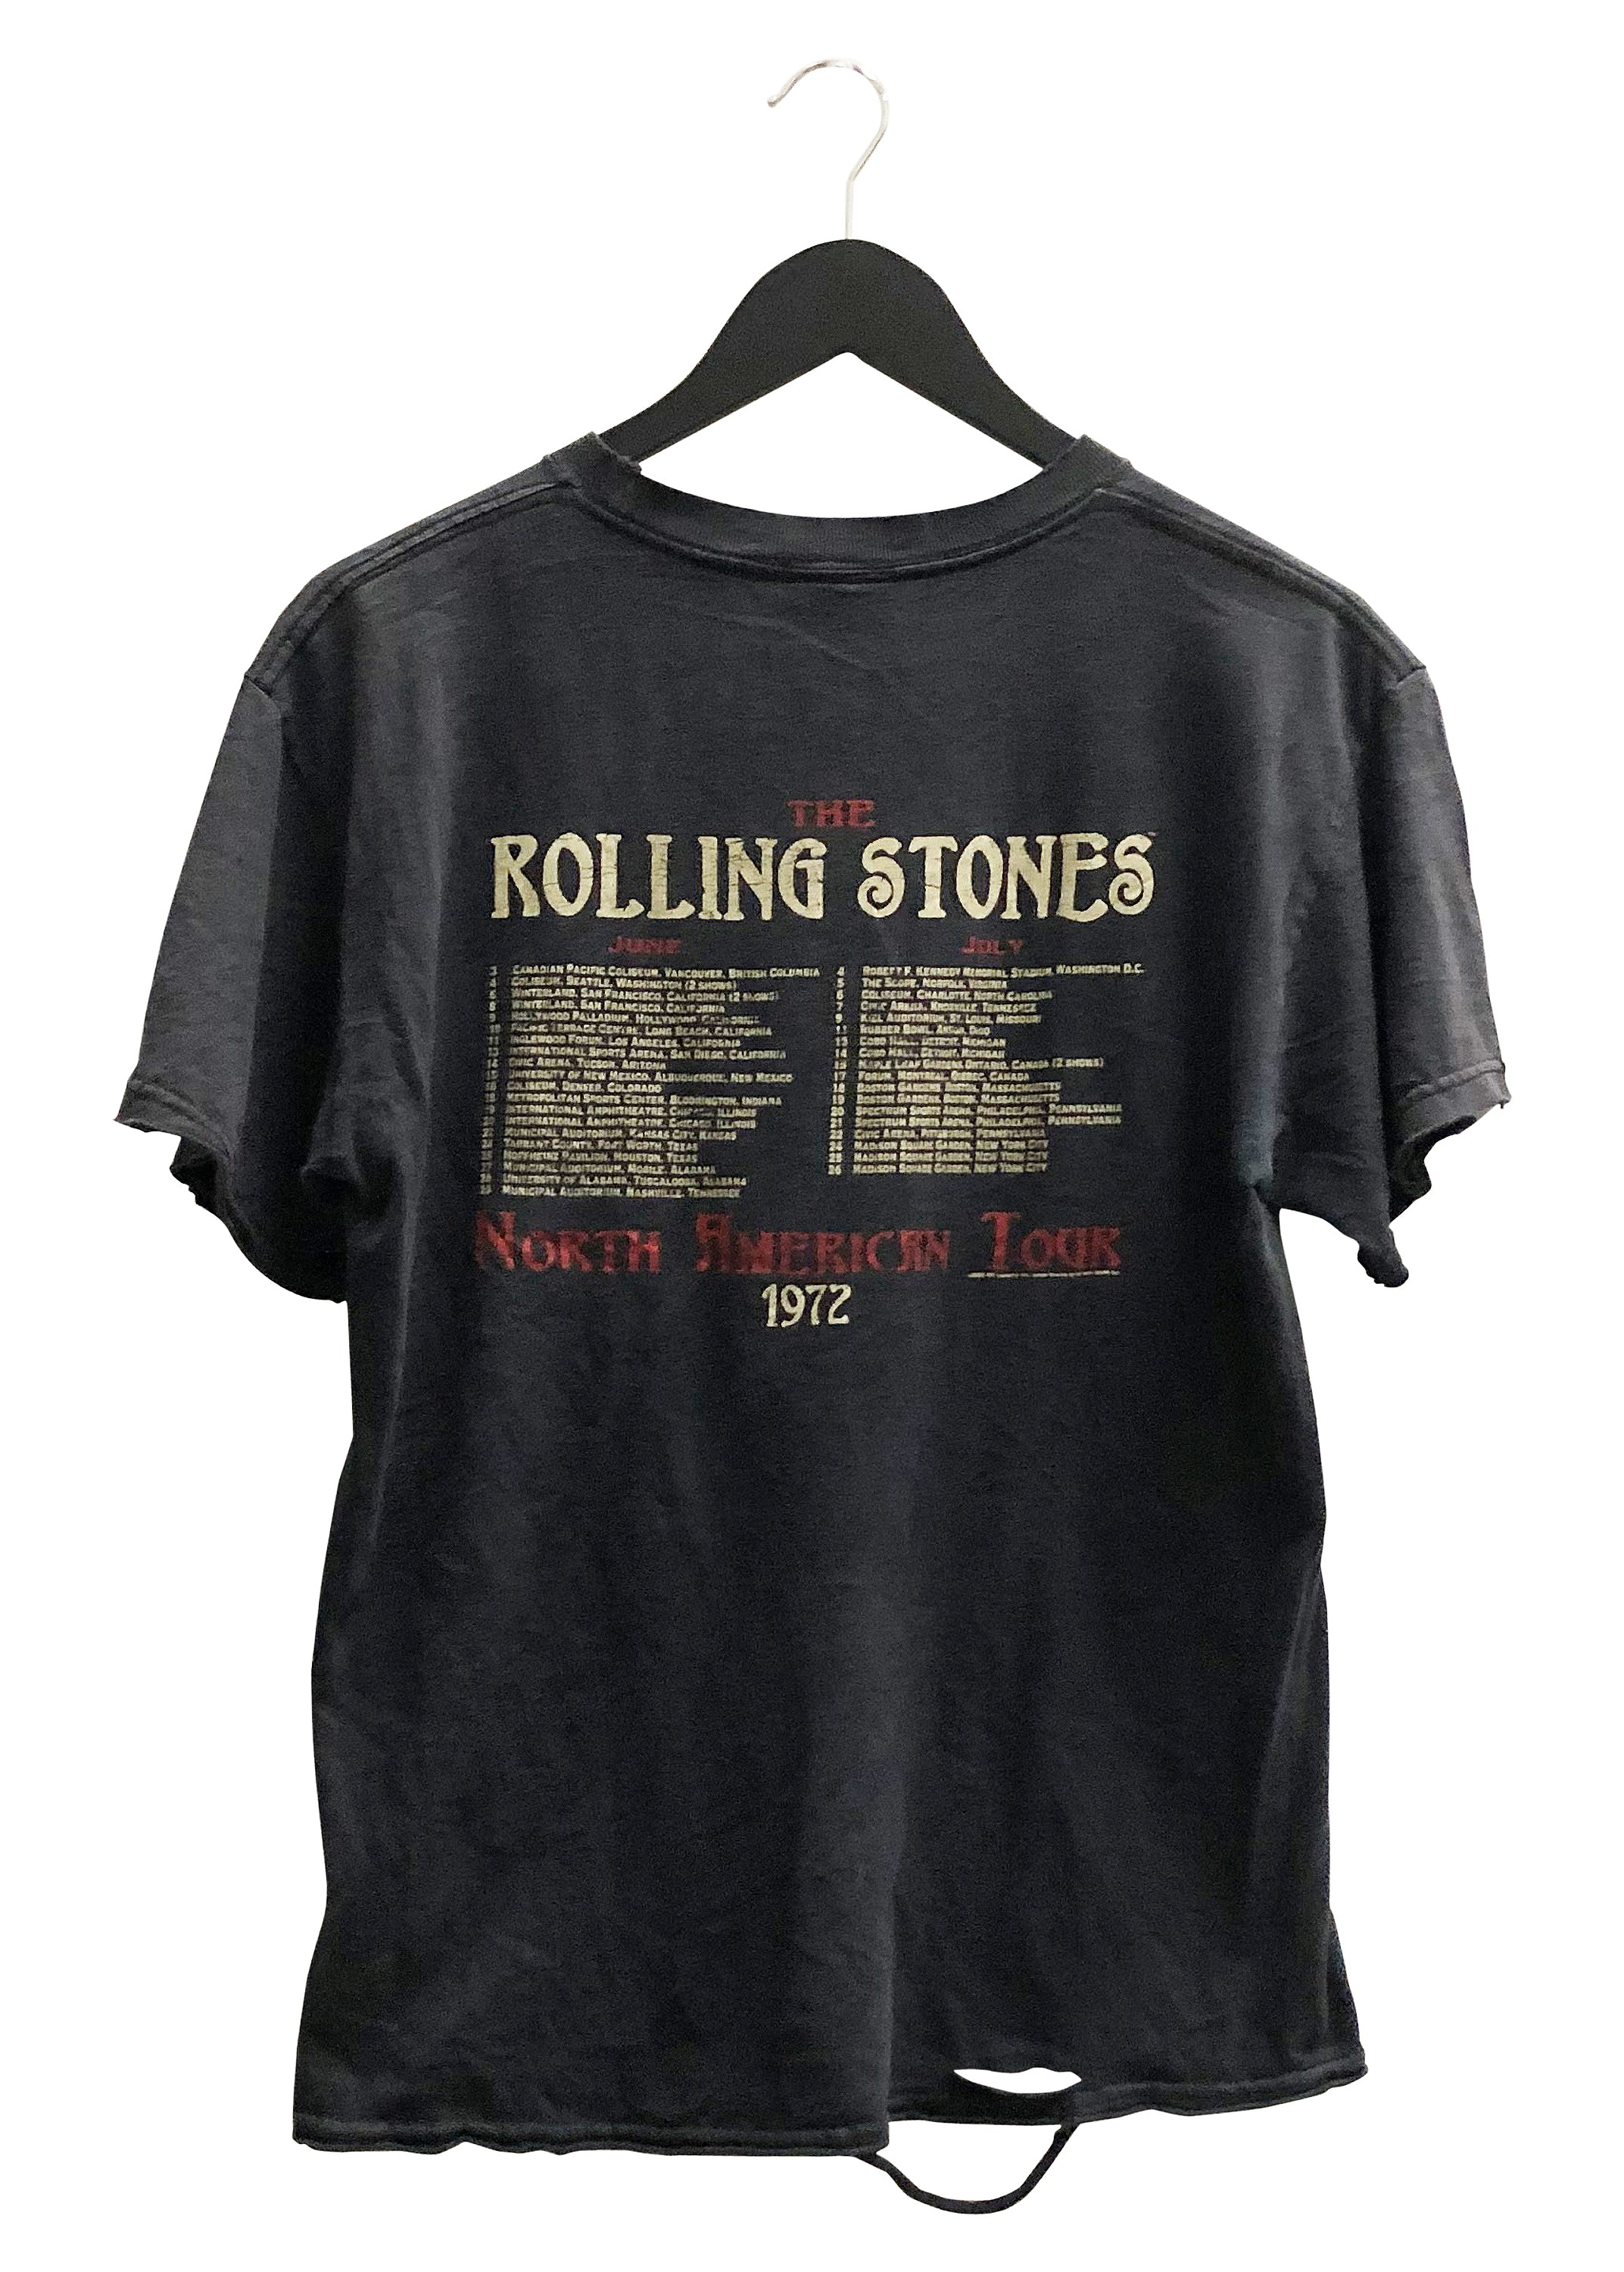 THE ROLLING STONES '1972 US TOUR' VINTAGE TEE